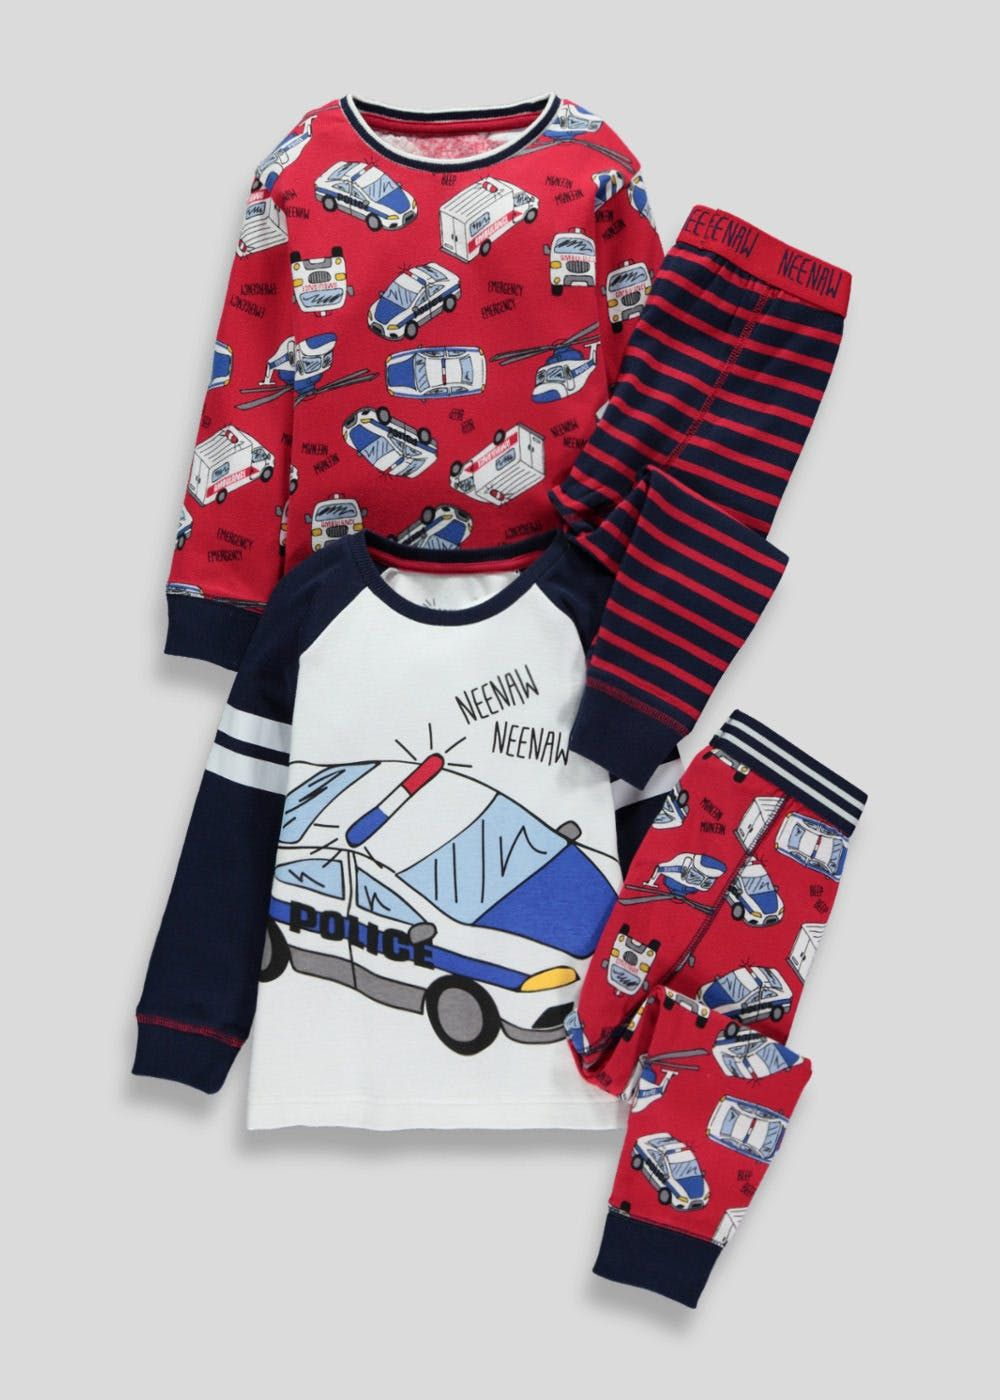 e2515c143506d Boys 2 pack long sleeve pyjama with transport print in red and navy.